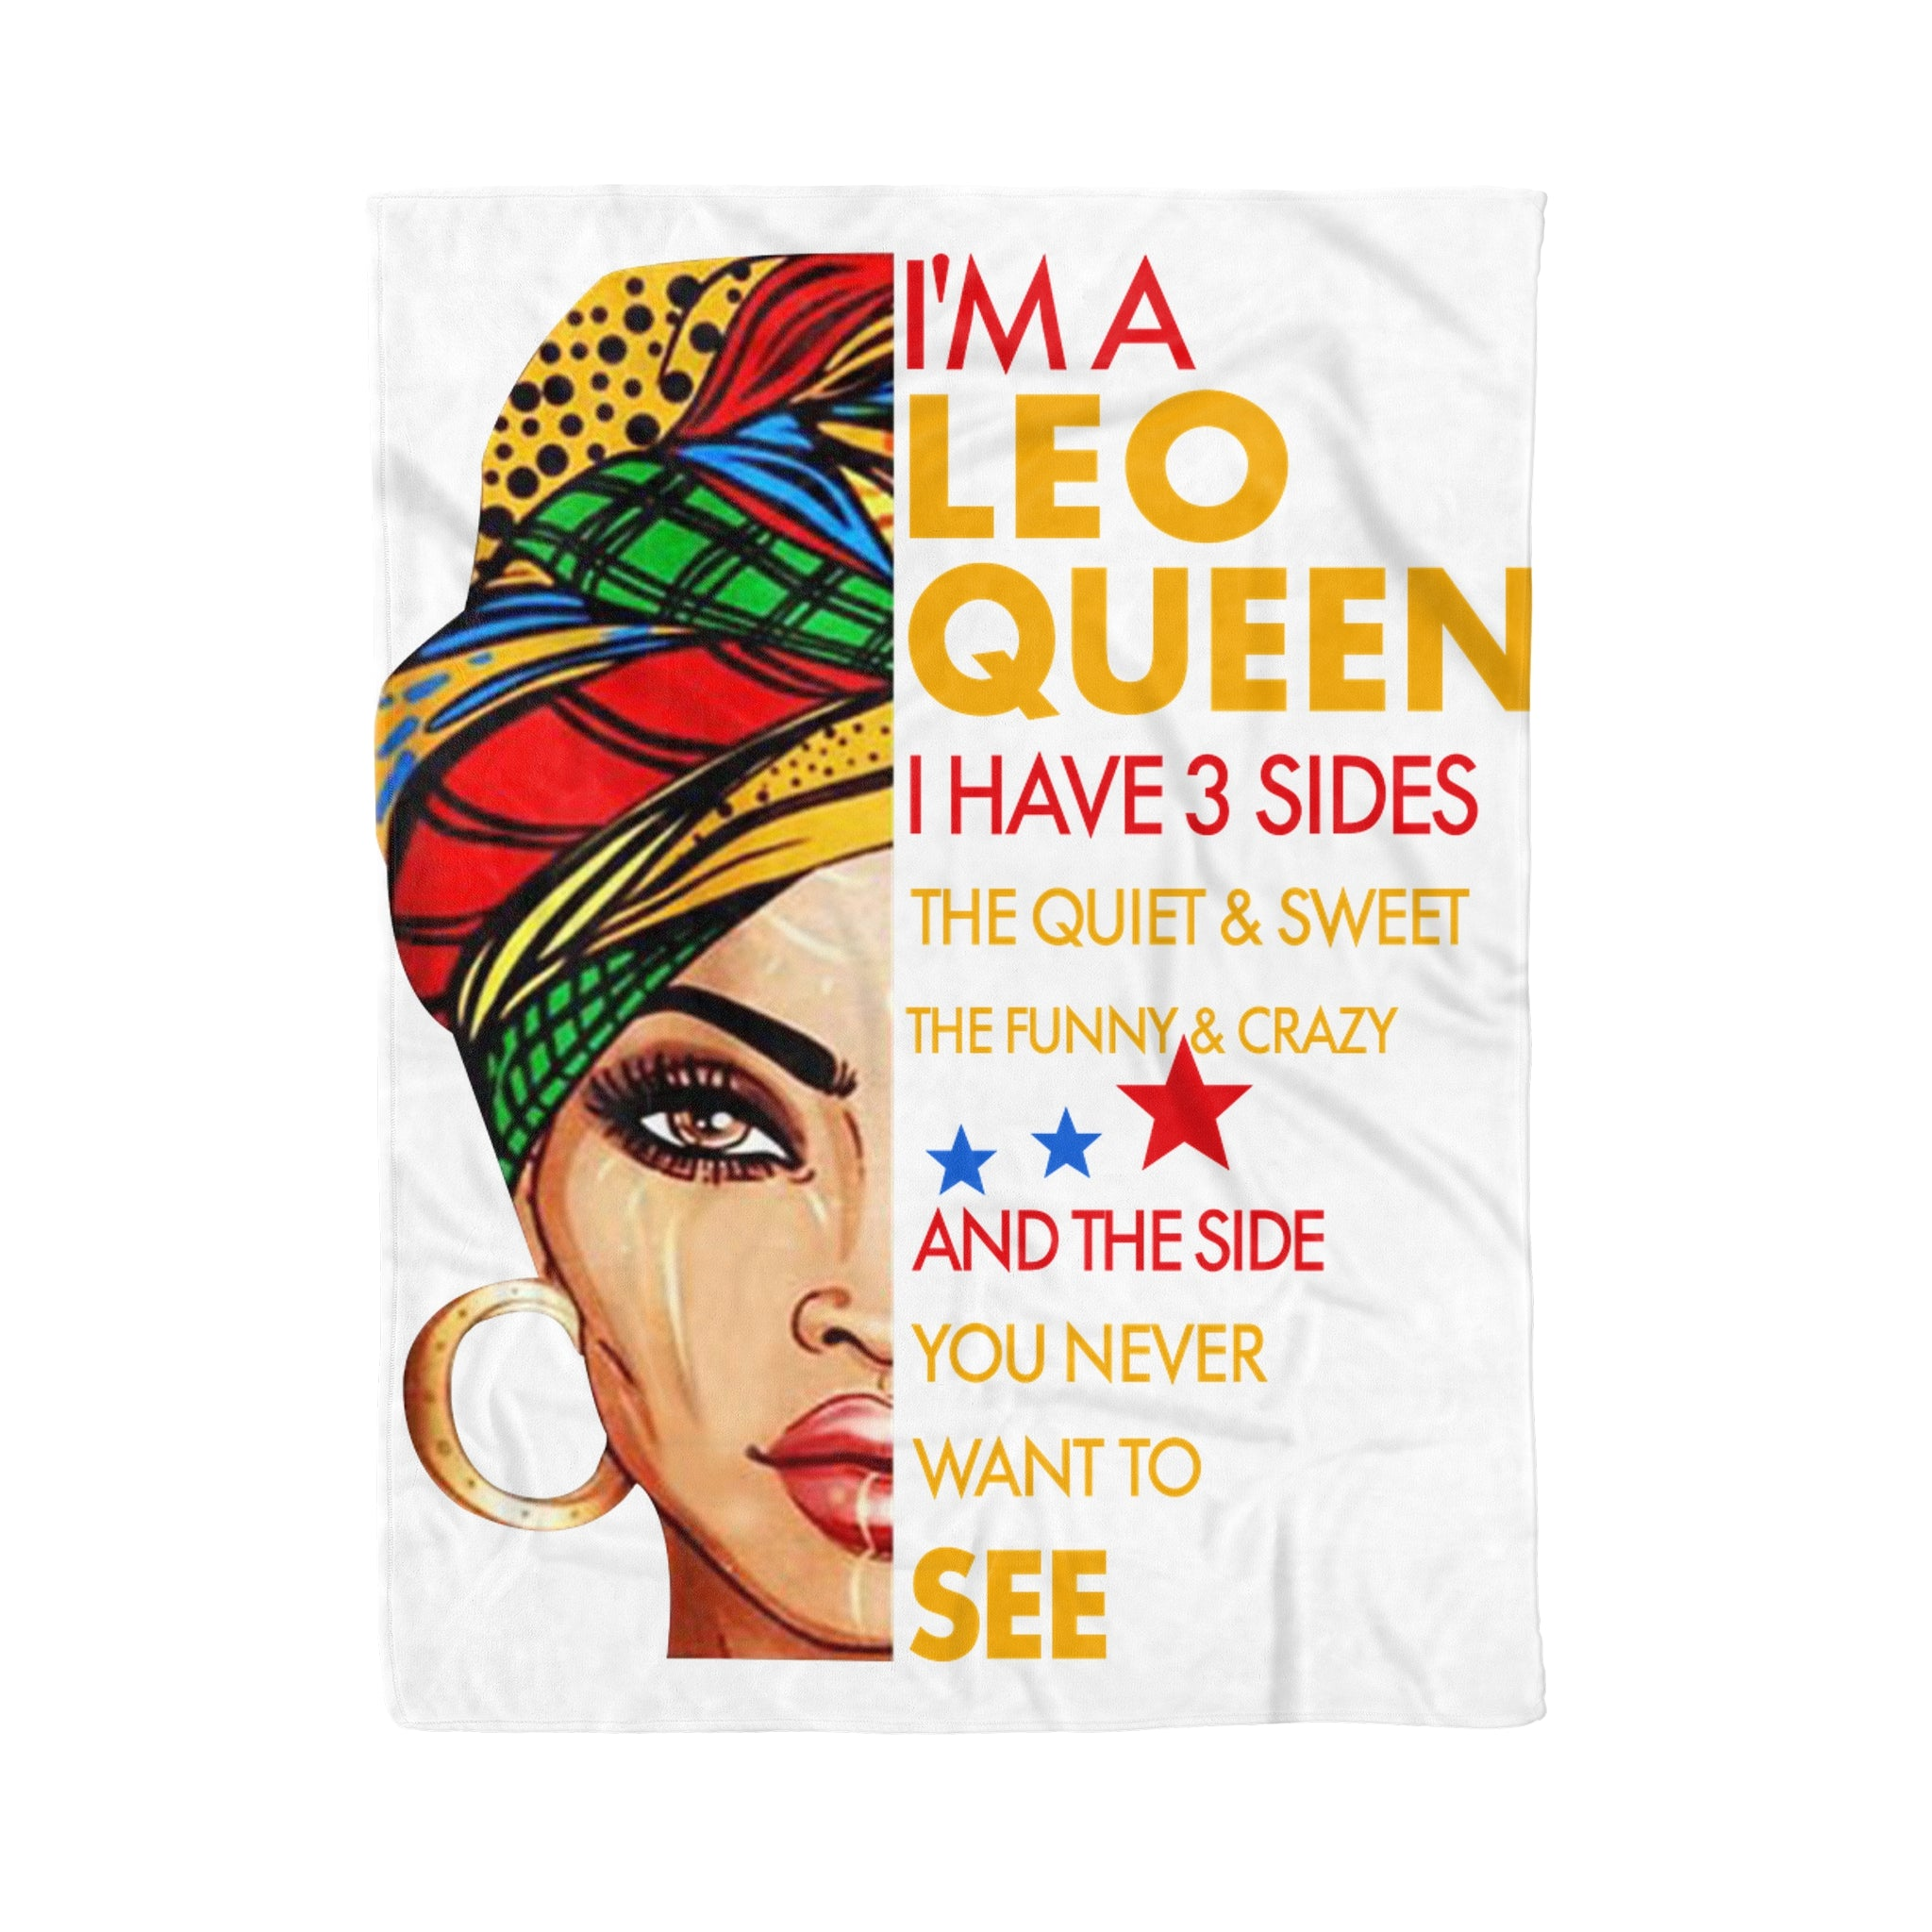 I'm A Leo Queen I Have 3 Sides Cancer Funny Birthday - Fleece Blanket